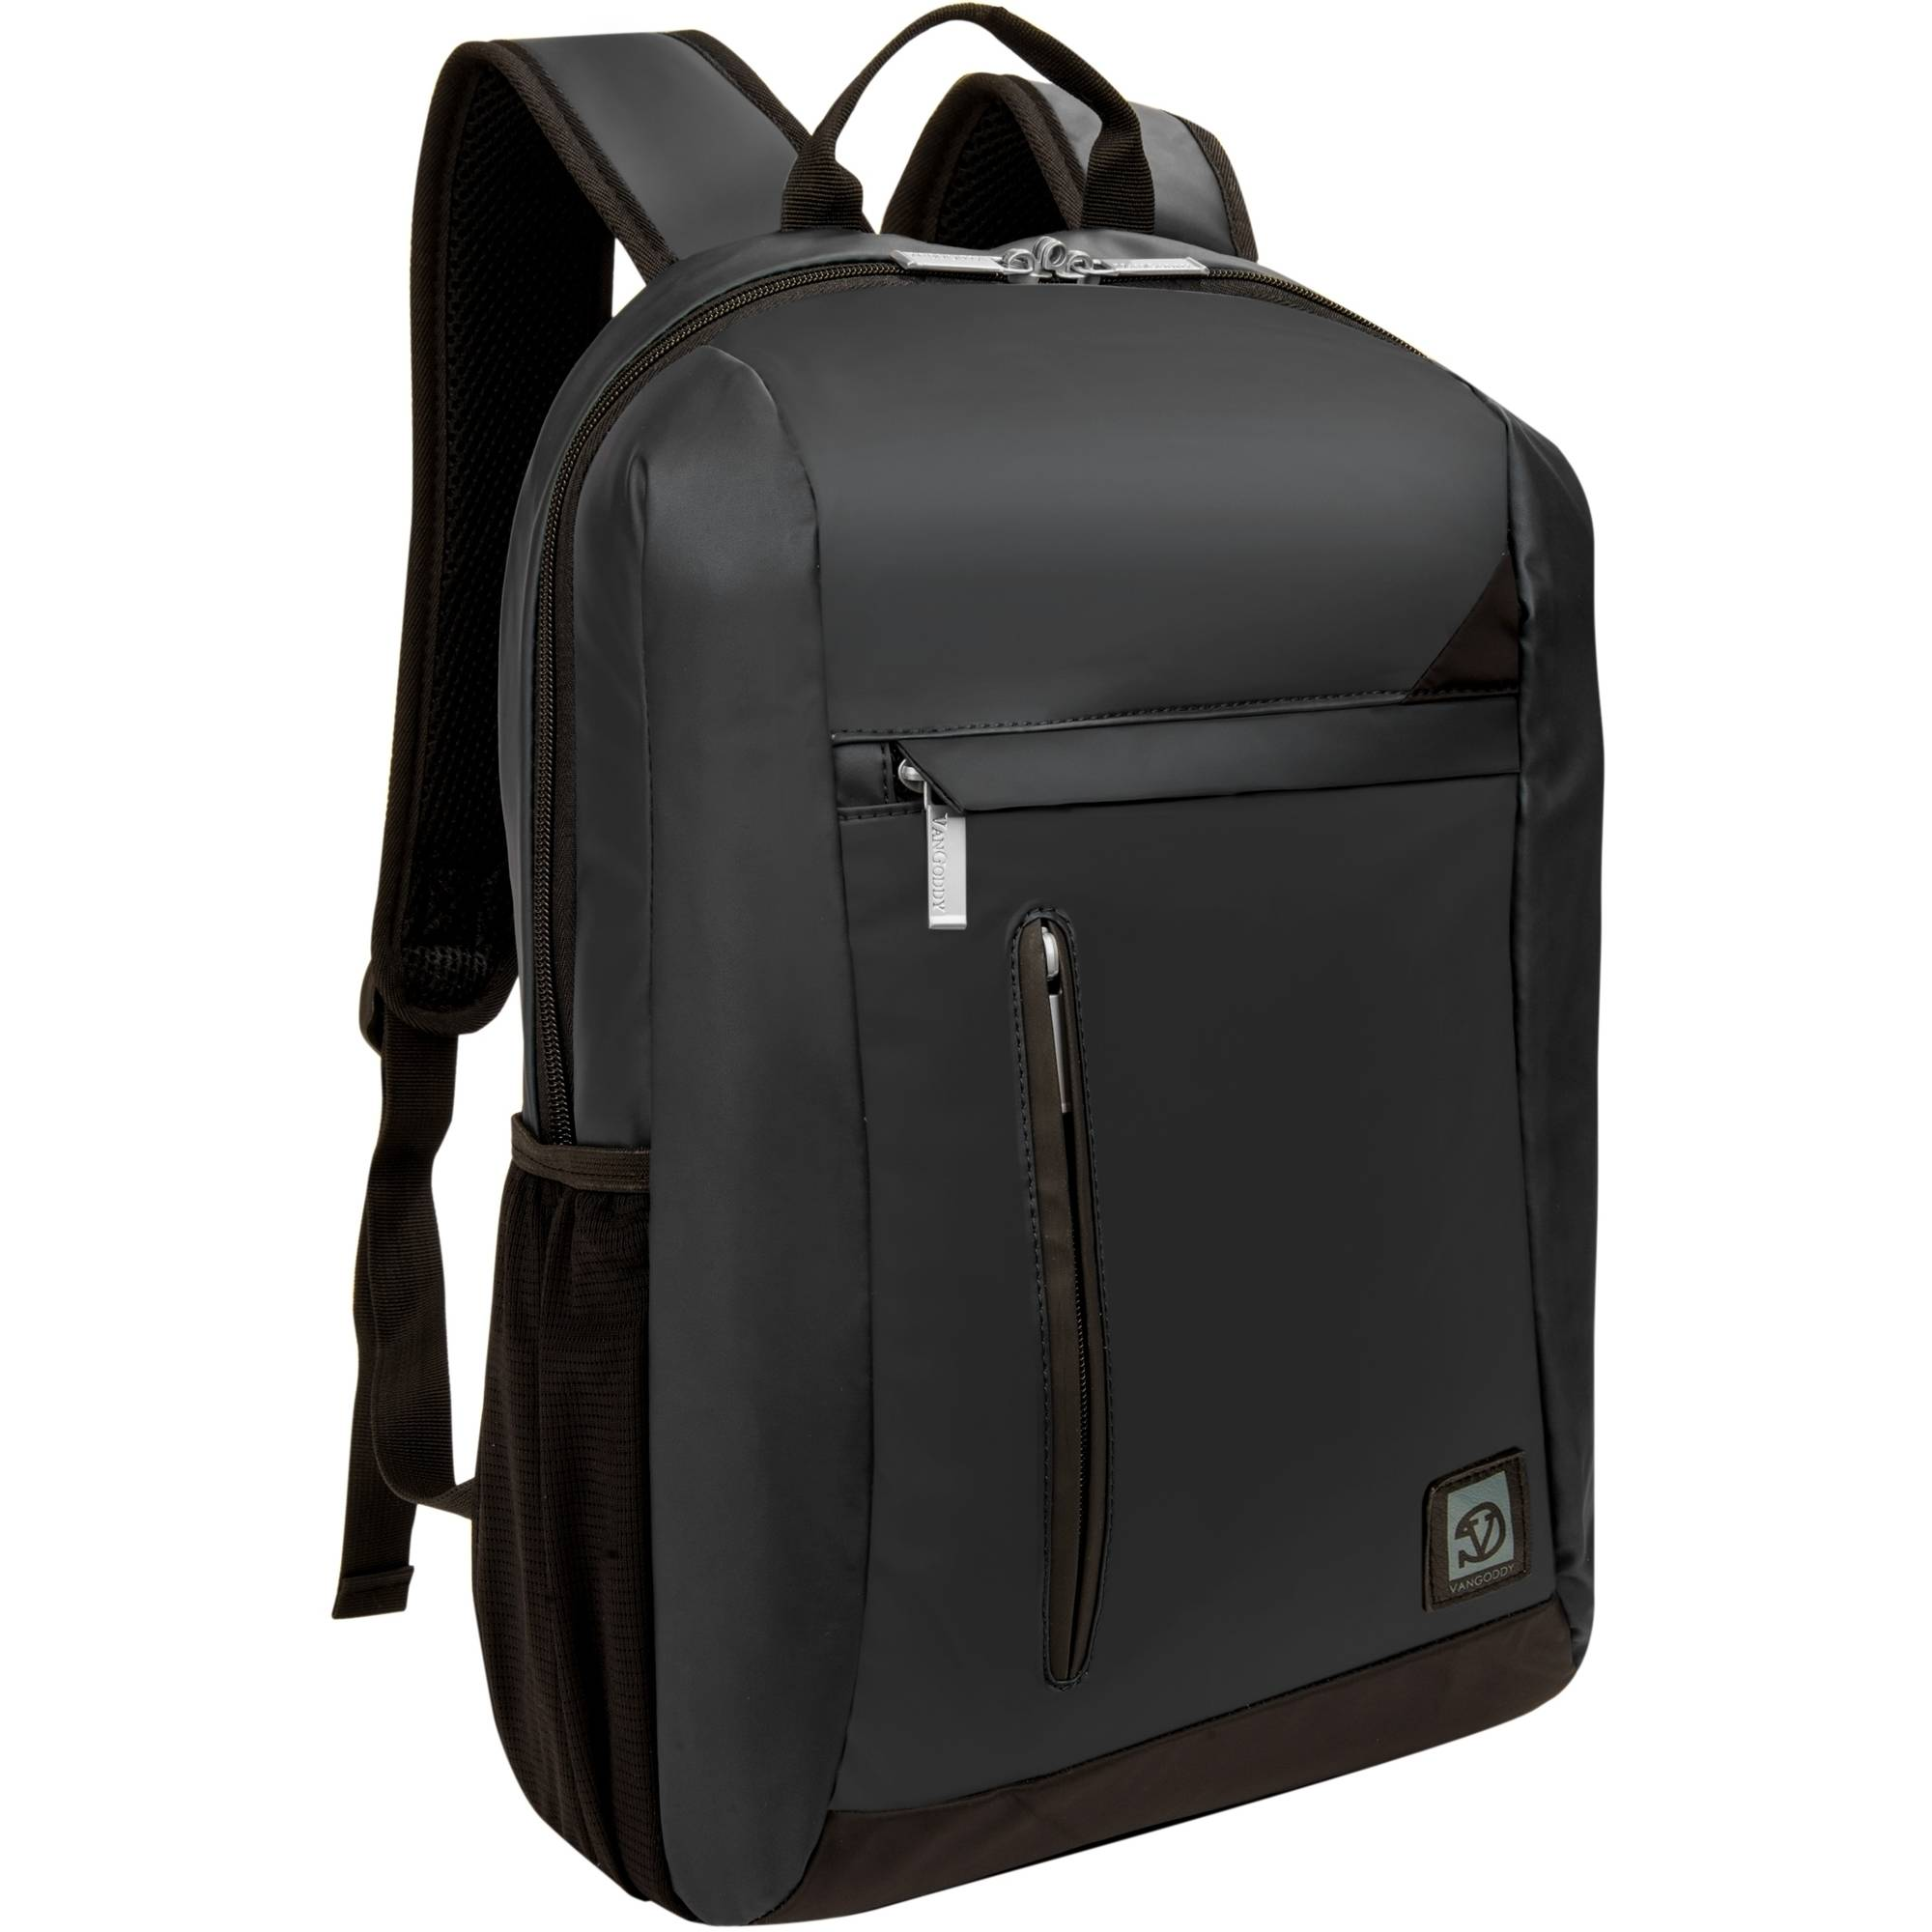 VANGODDY Adler Cushioned Laptop, Notebook, Netbook, Ultrabook Backpack fits up to 13 / 13.3 / 15 / 15.6 [Apple, Acer, Asus, HP Samsung, Toshiba, etc]